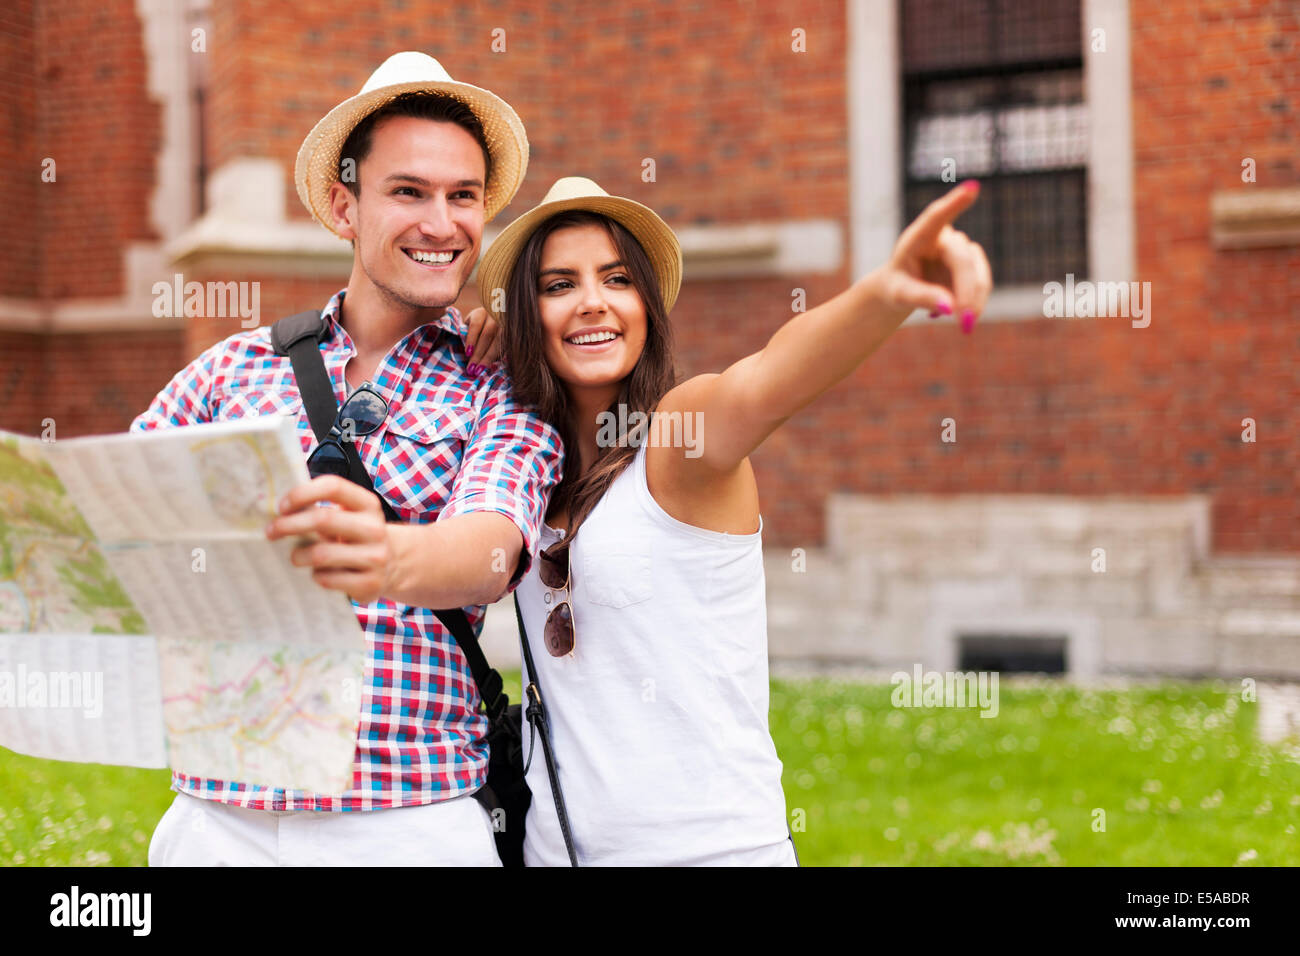 Woman pointing at something to her boyfriend during sightseeing, Debica, Poland - Stock Image